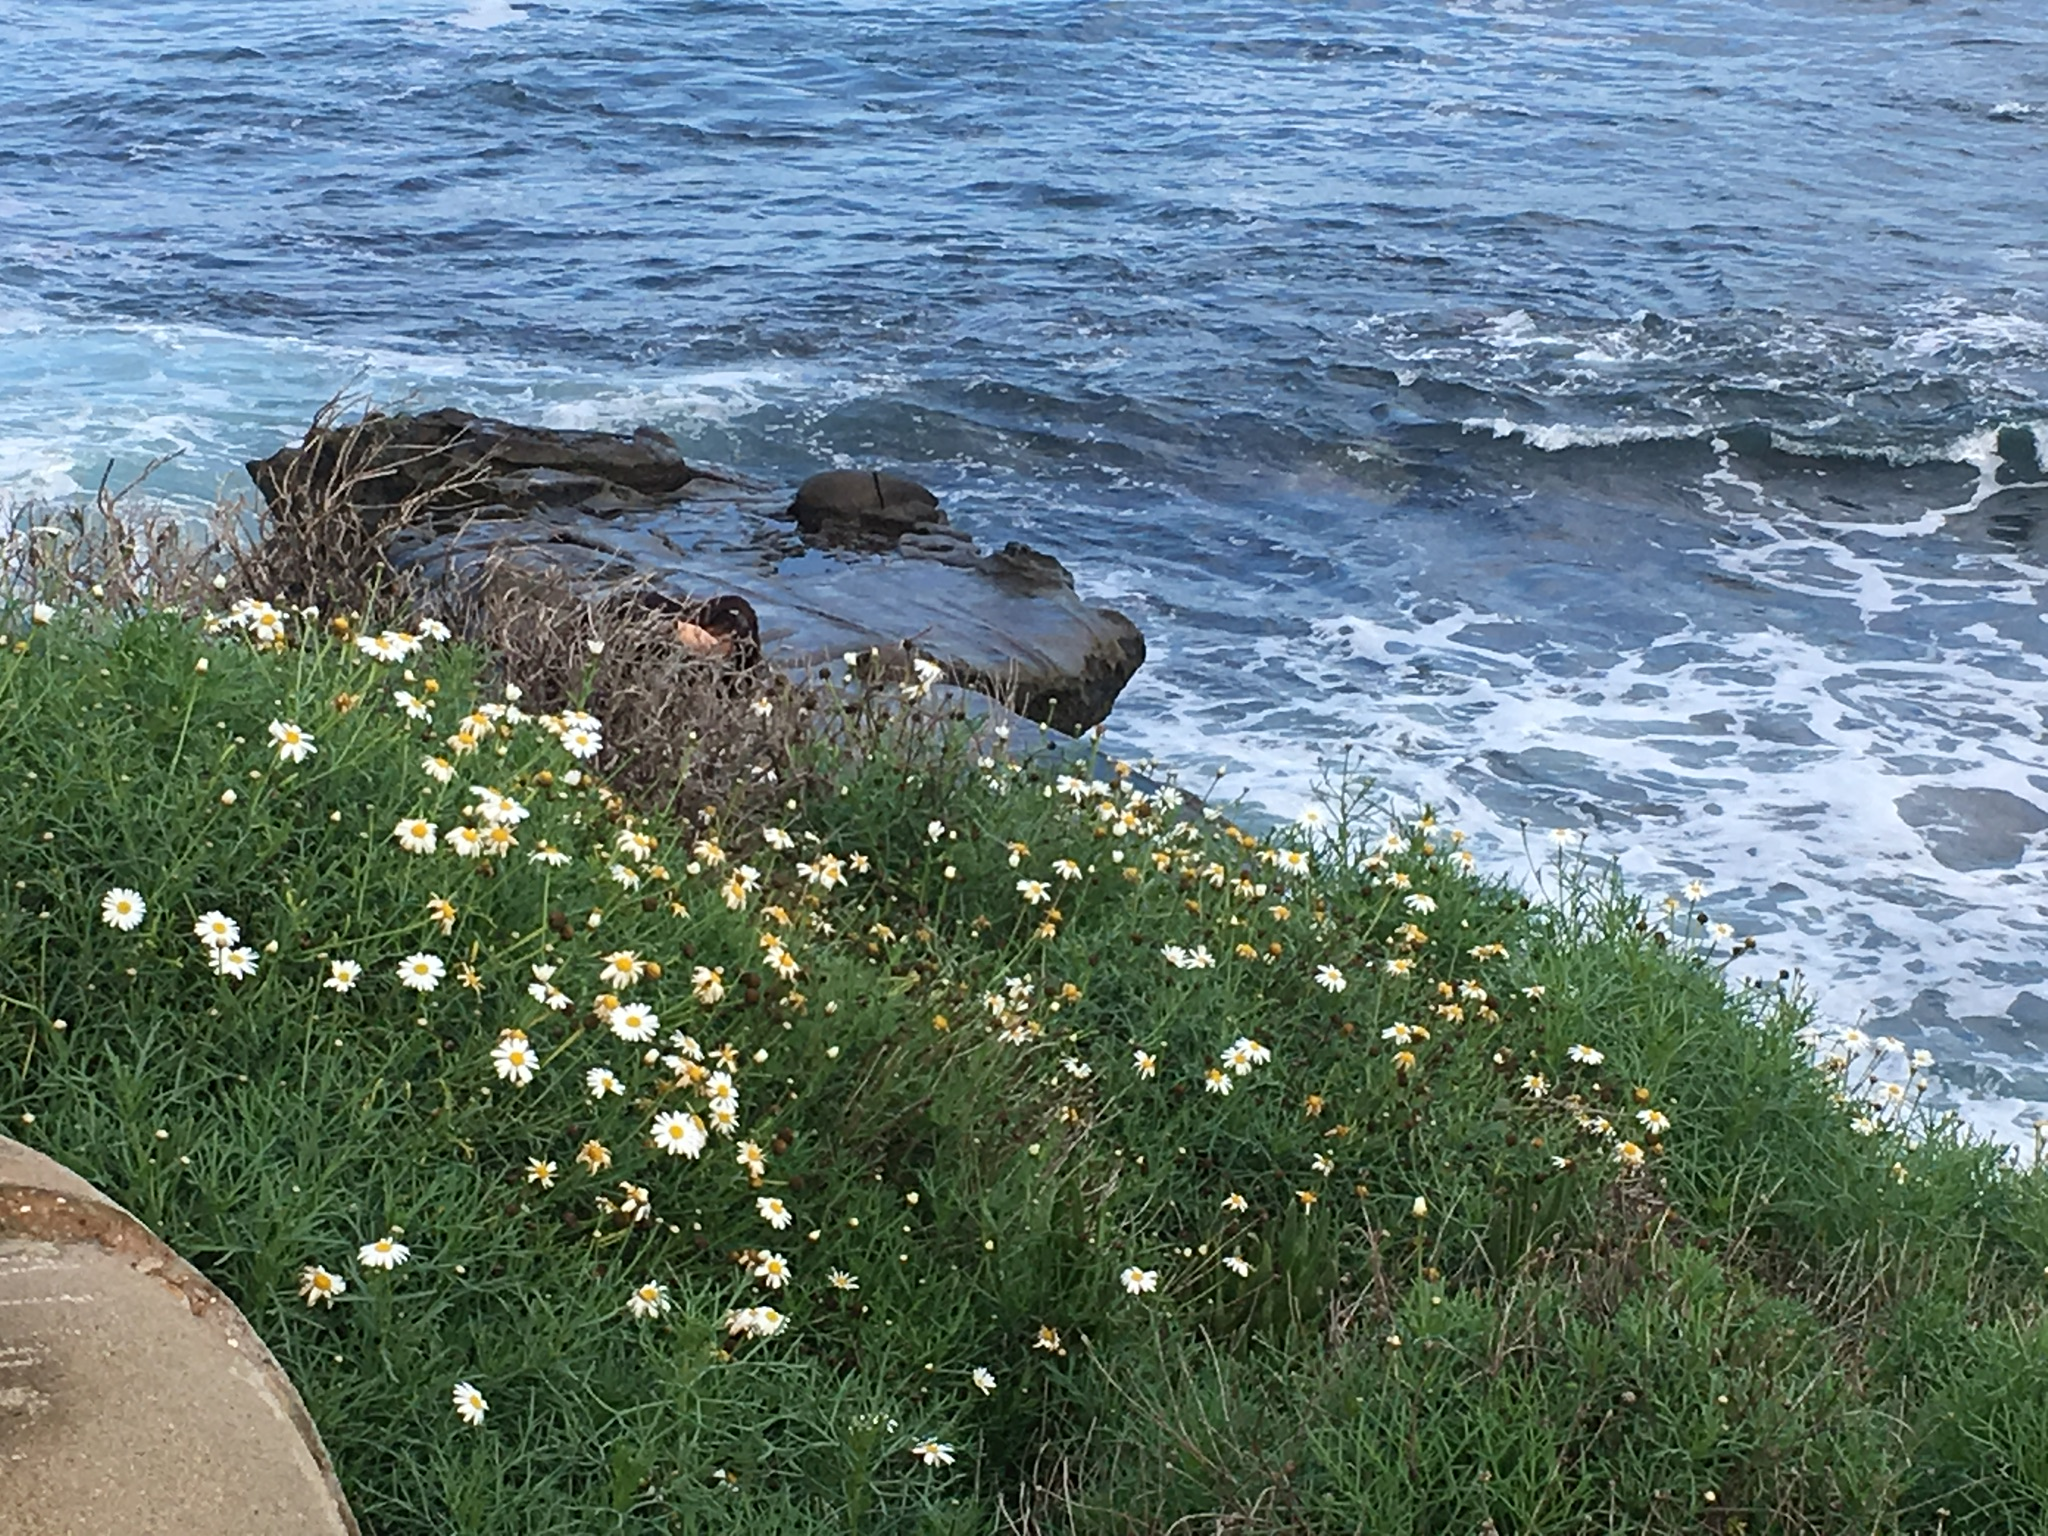 Blue water and flowers along the rocky coast.